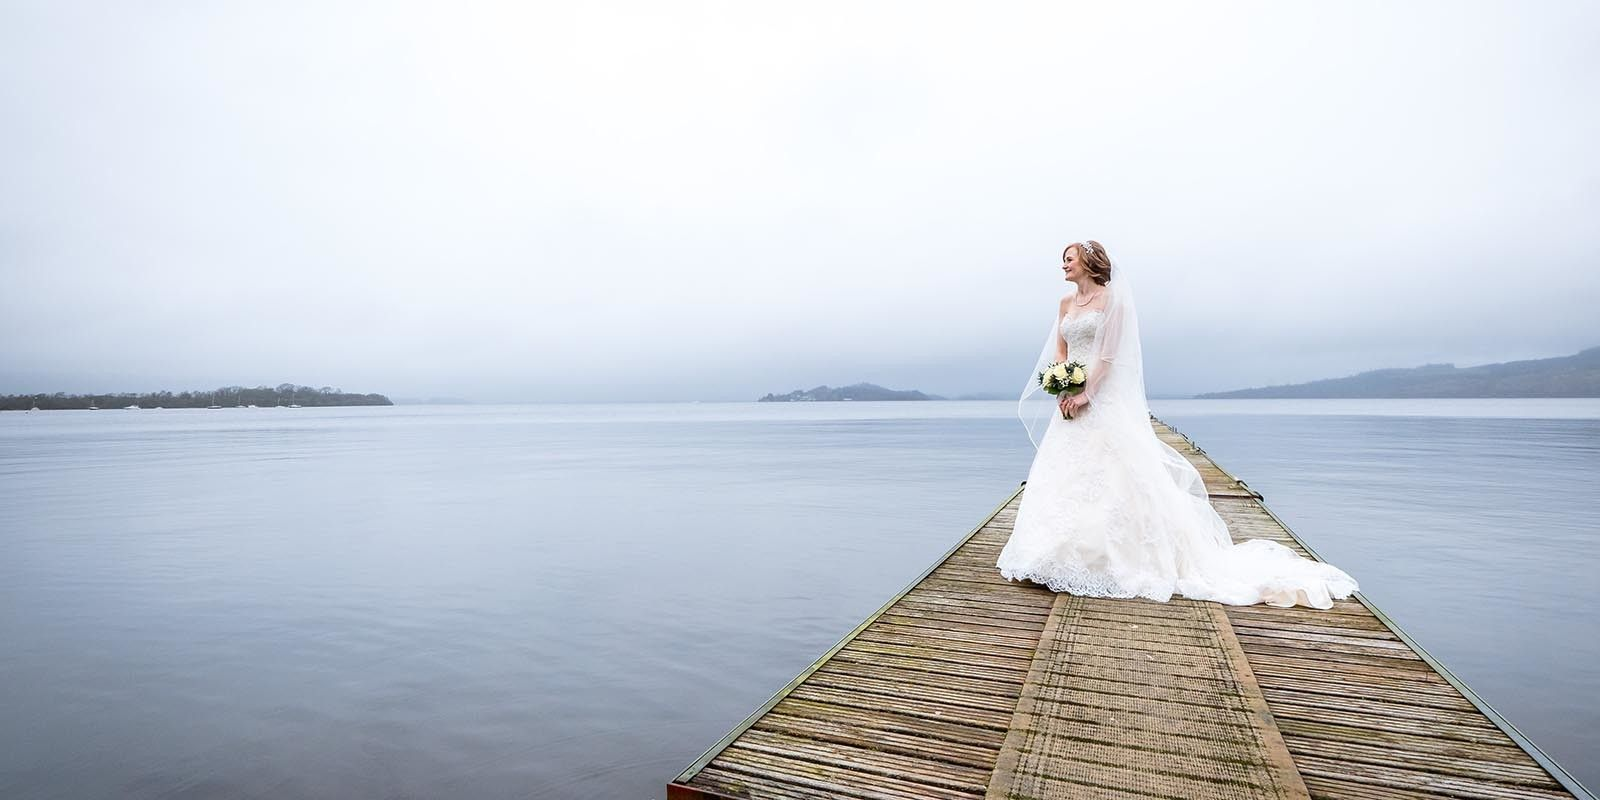 Natural and elegant wedding photography by Glasgow wedding photographer Ian Arthur